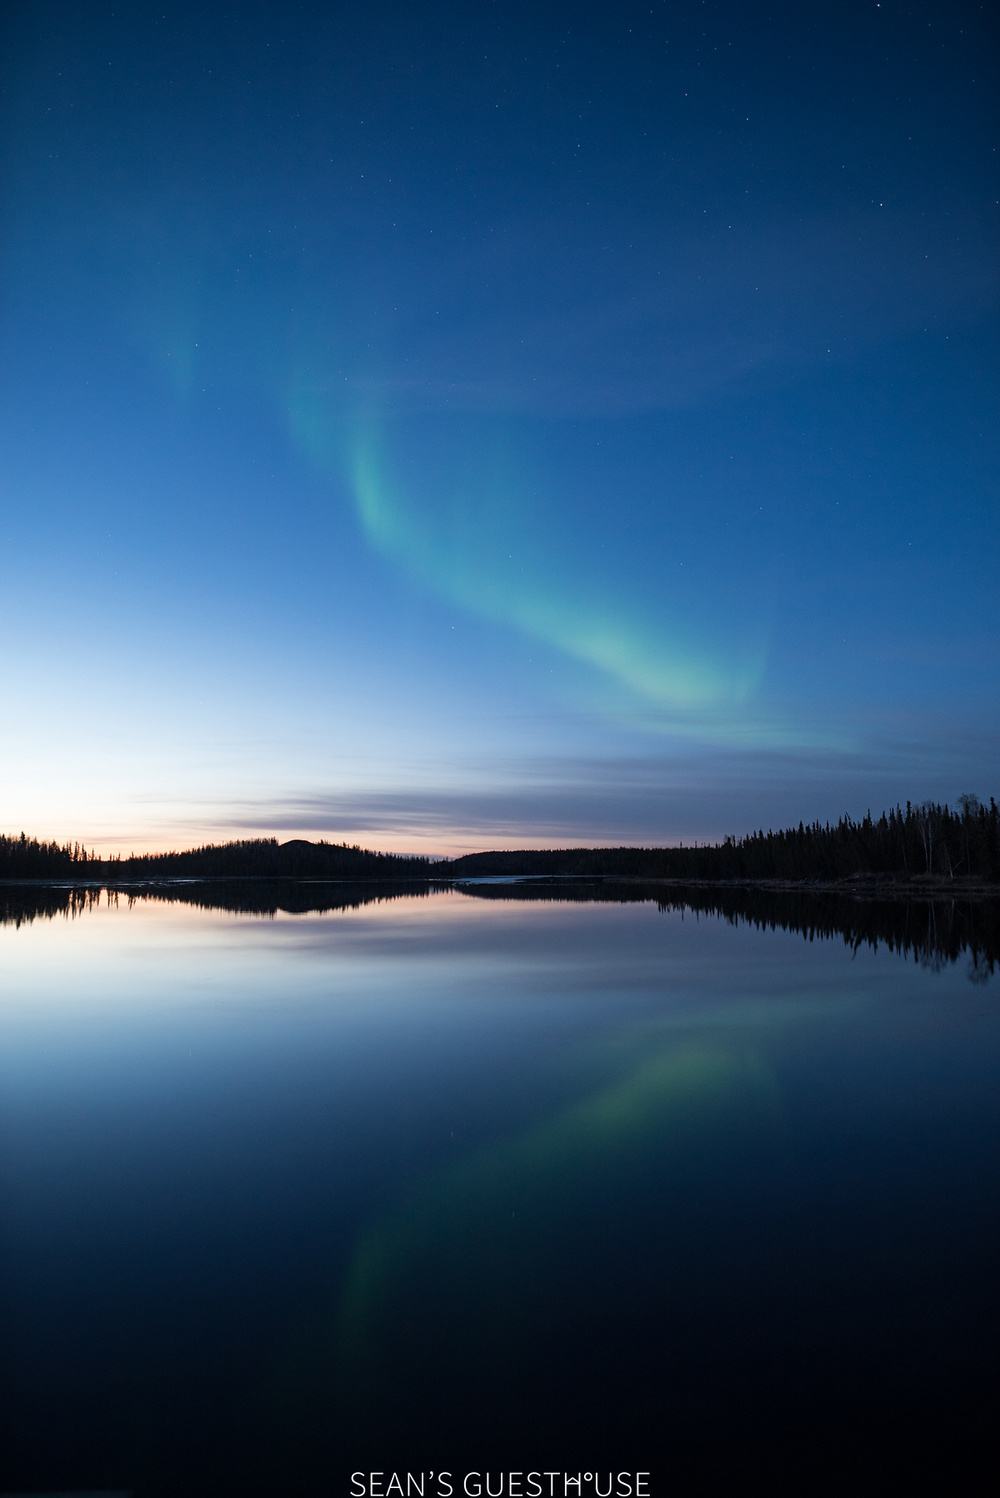 Sean's Guesthouse - Best Place to see the northern lights - Yellowknife Accommodation - 4.jpg